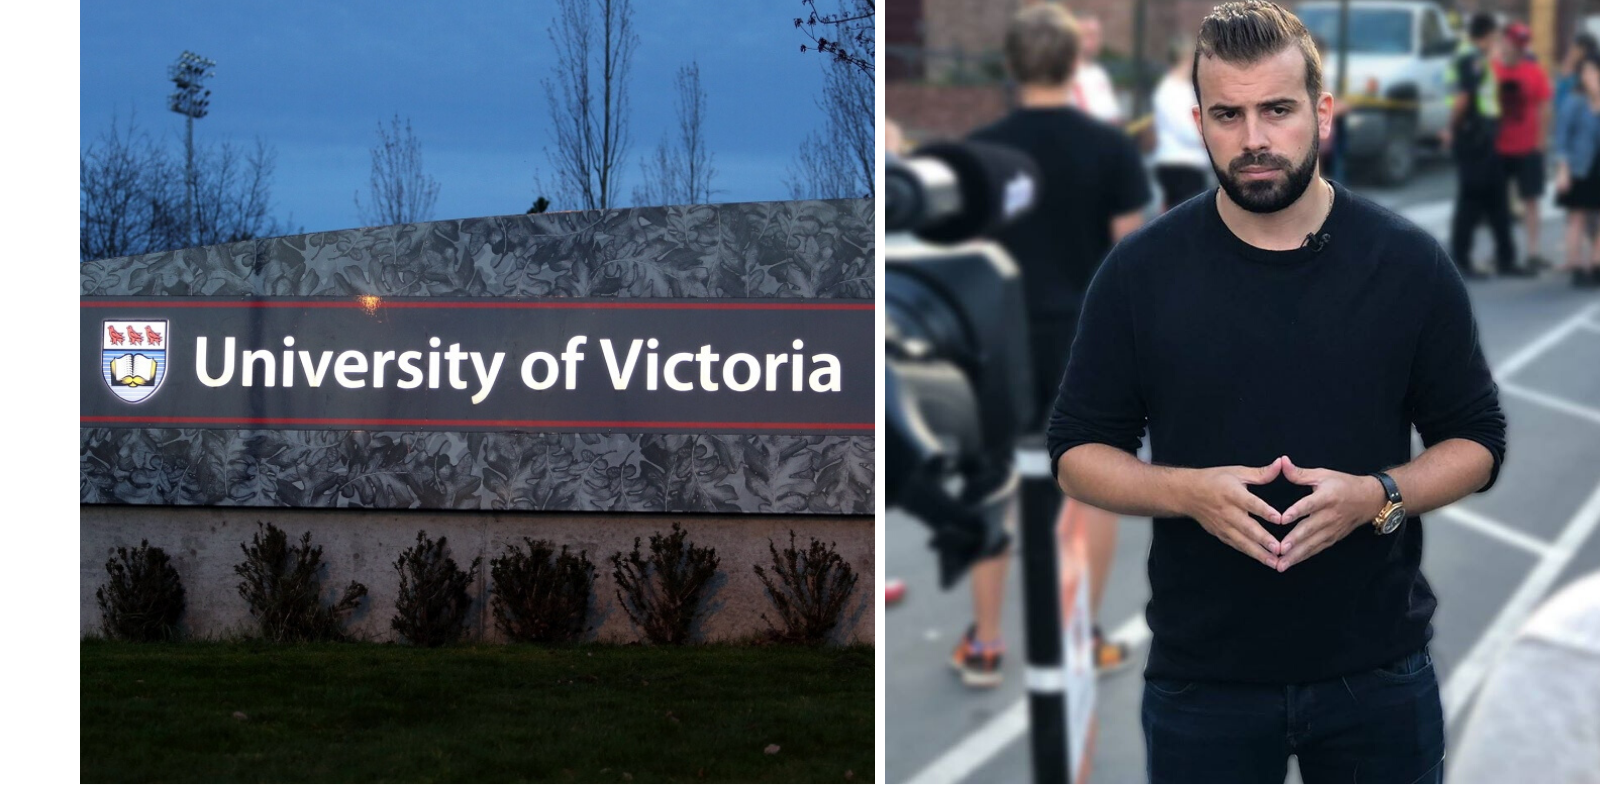 EXCLUSIVE: University of Victoria de-platforms conservative speaker after threats of left-wing violence